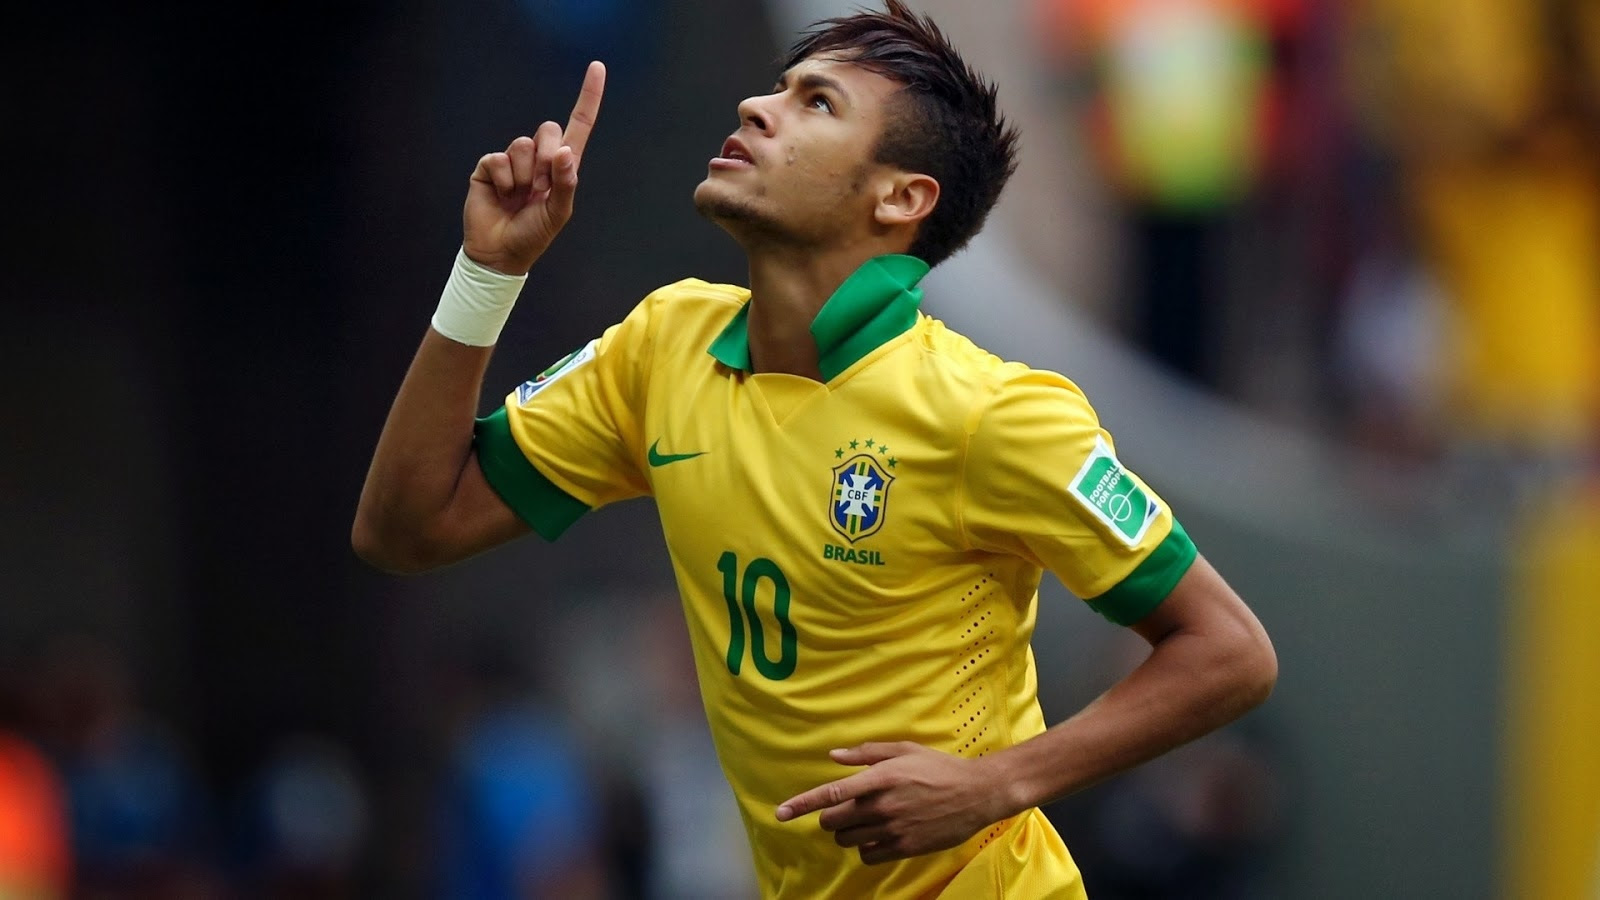 Awesome Neymar Wallpapers HD - The Nology